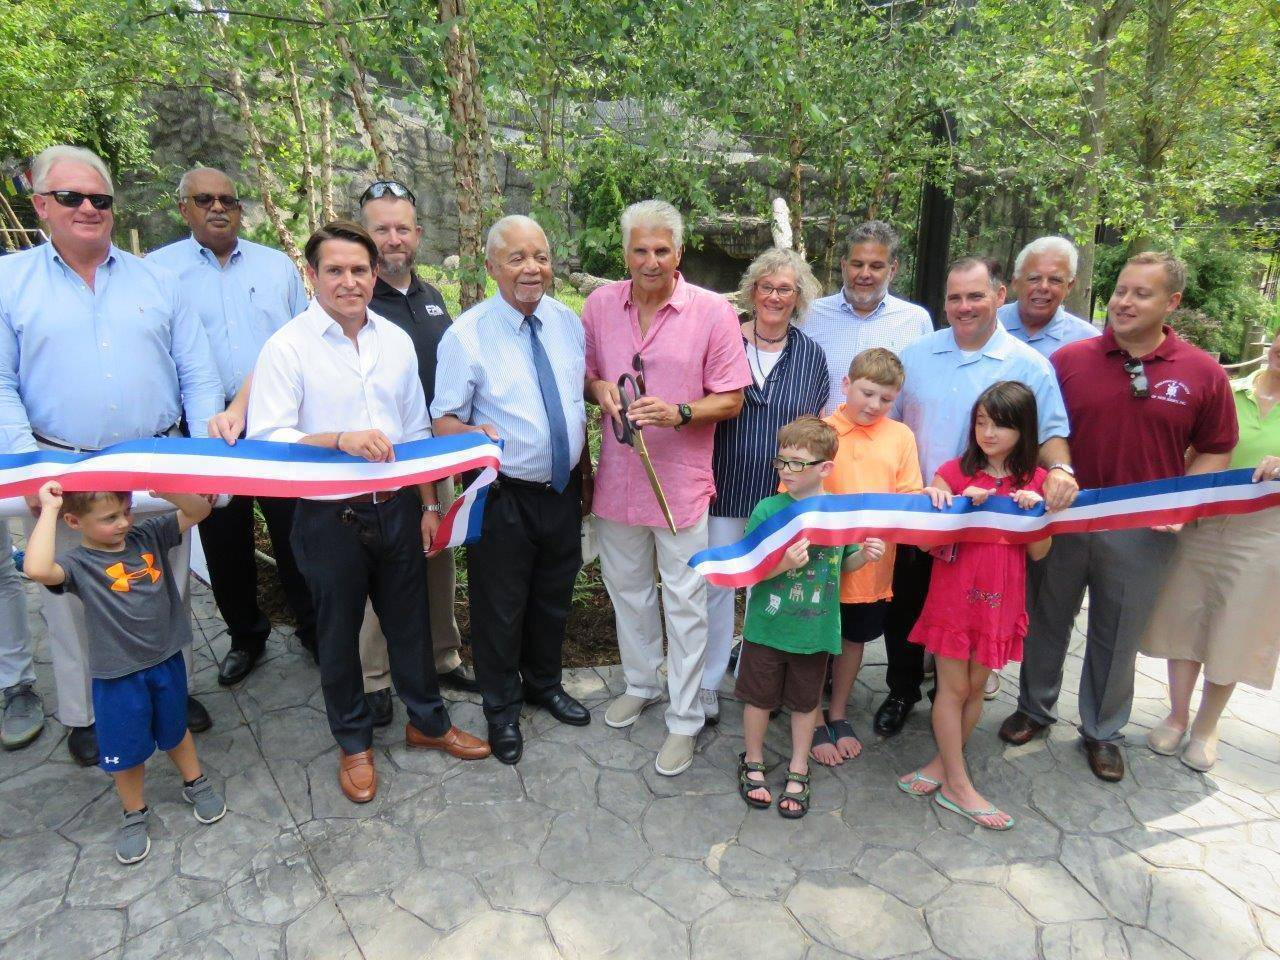 Essex County Zoo Opens Leopard Exhibit Featuring Two Species